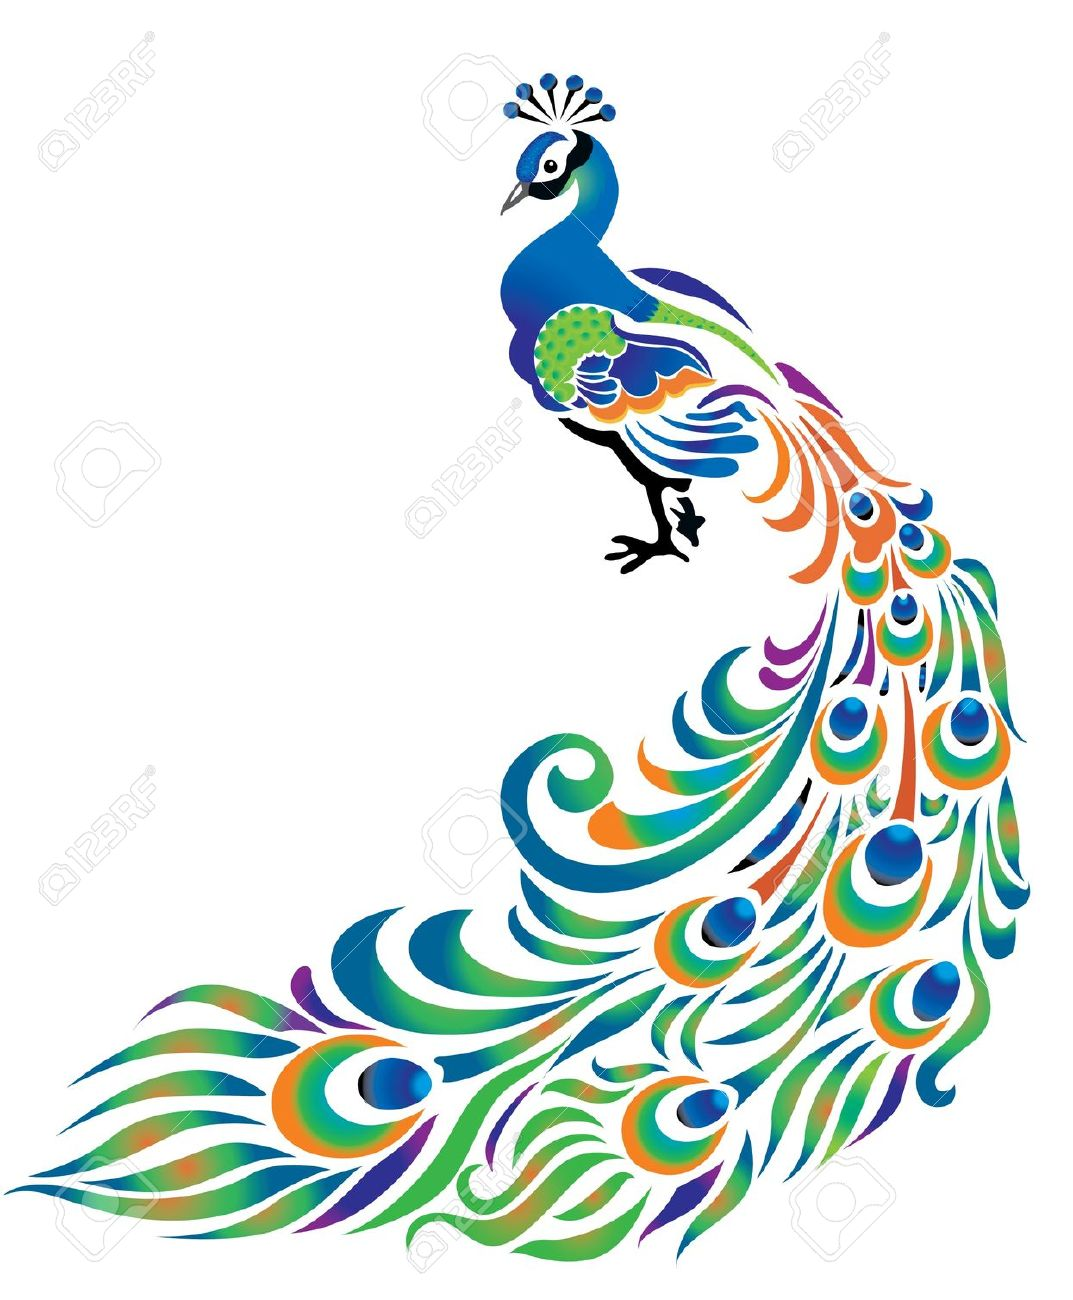 1073x1300 A Swirly Peacock Peacocks, Drawings And Doodles